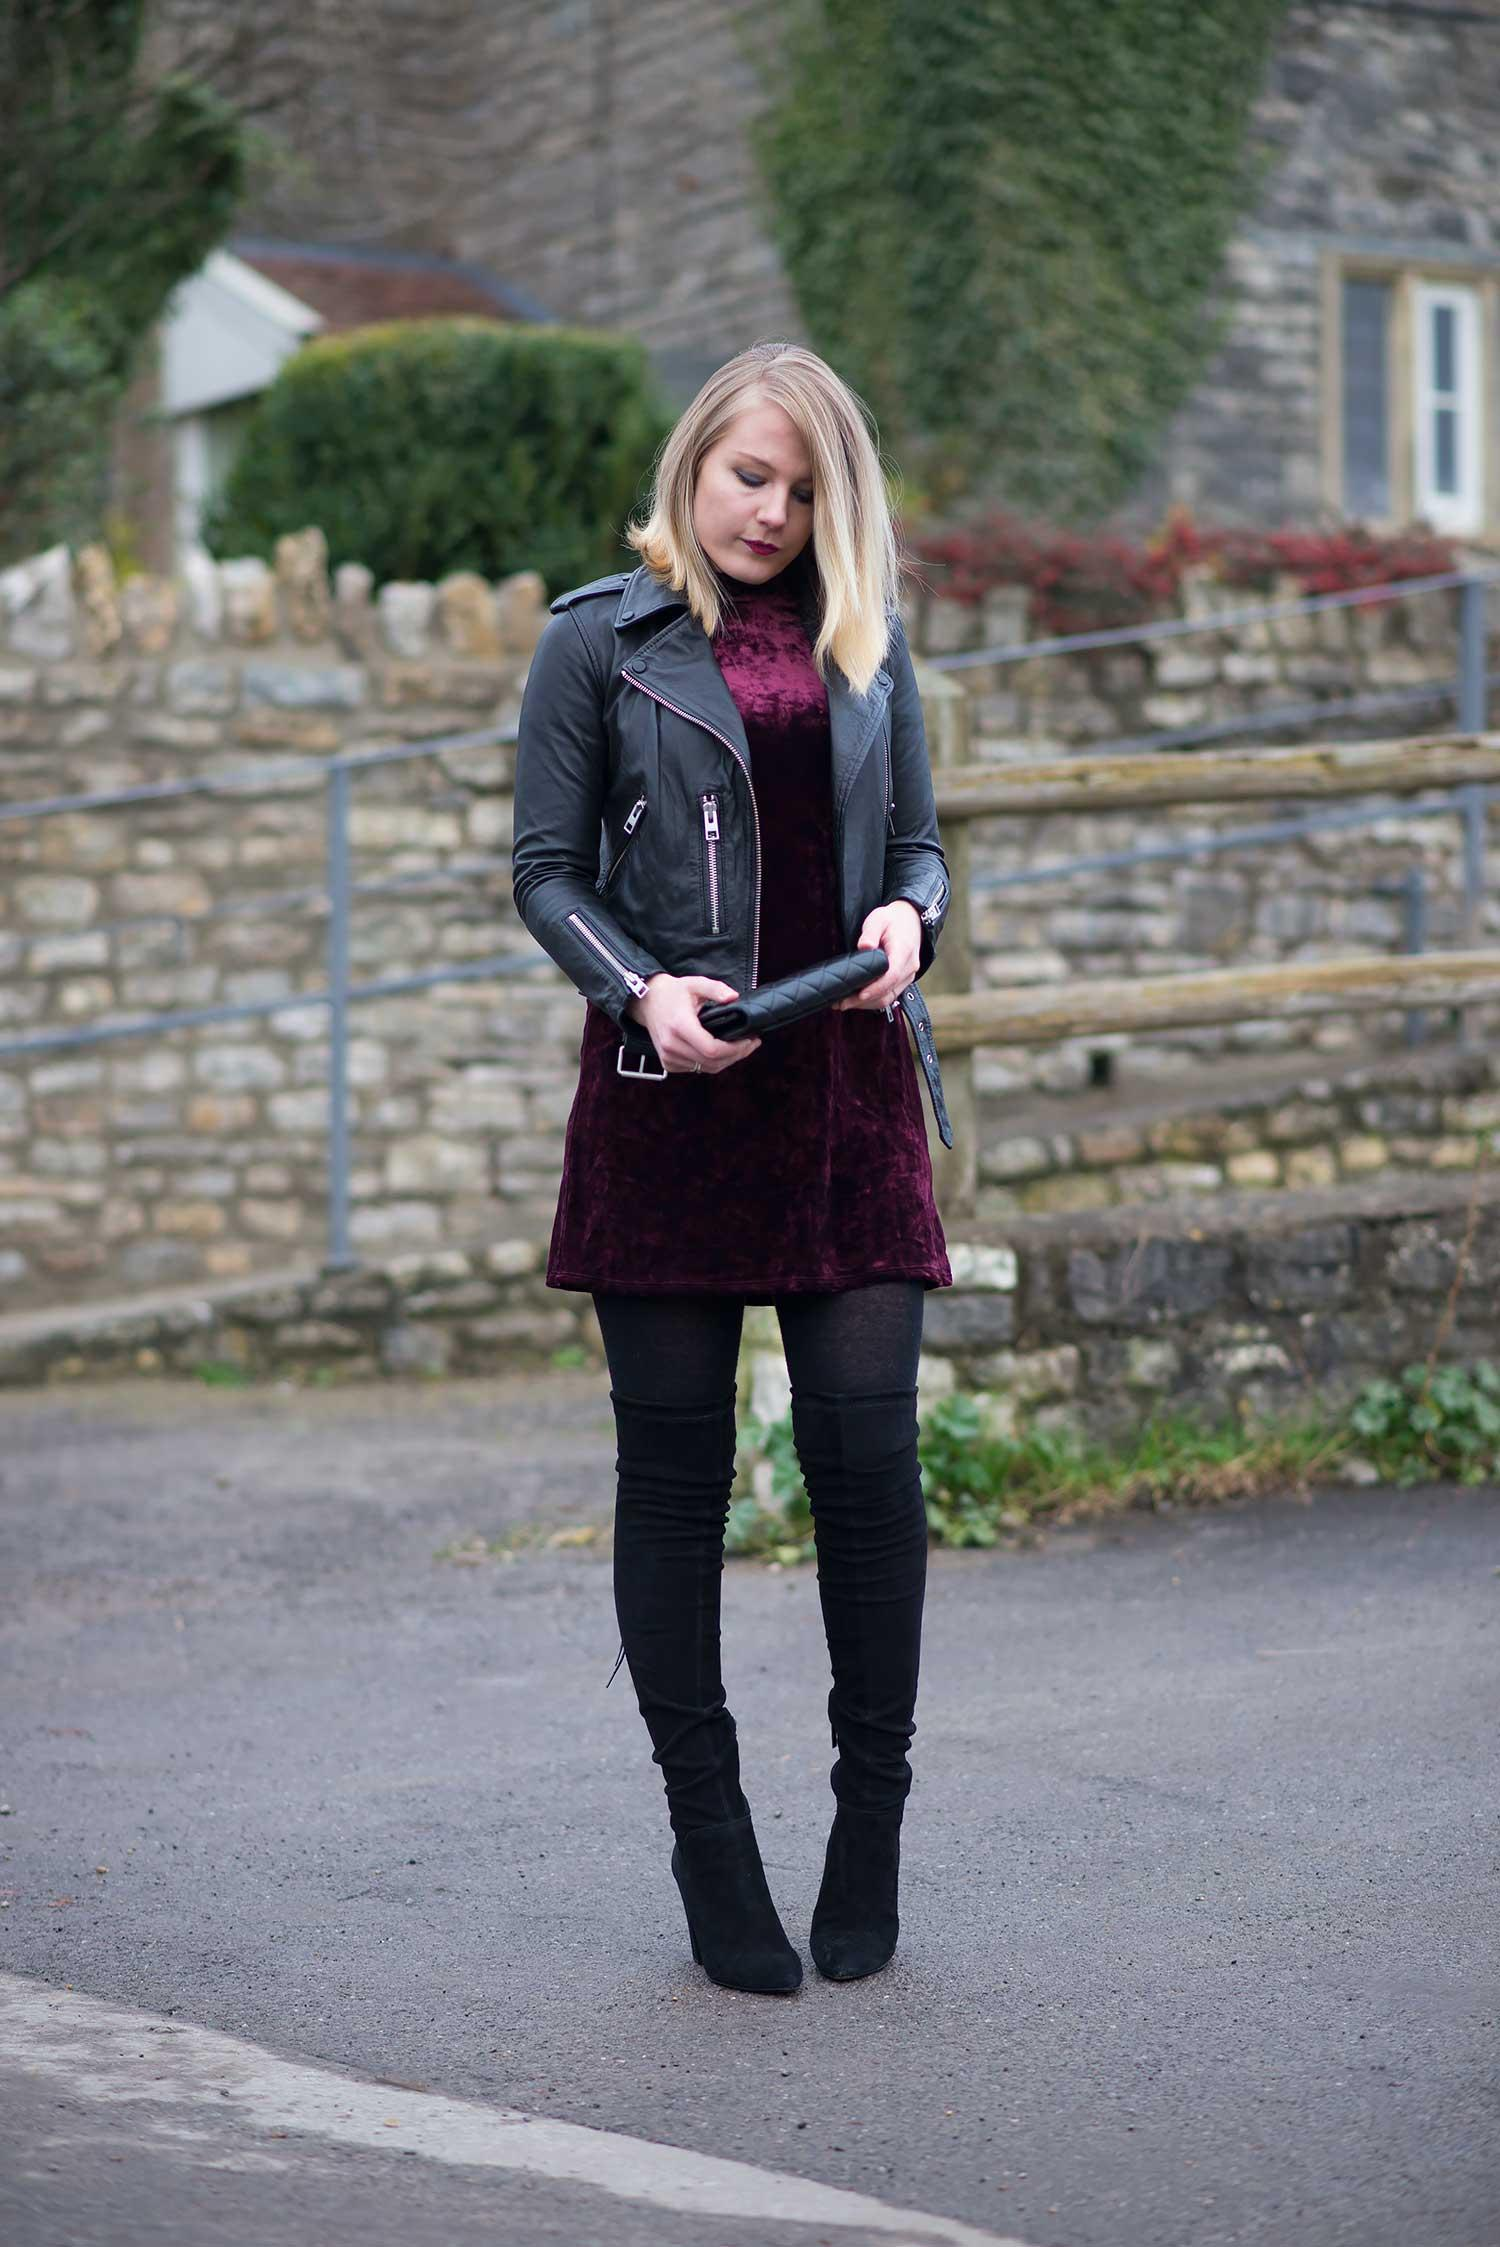 ca93278de8d7 Layered Over A Dress With Over The Knee Boots